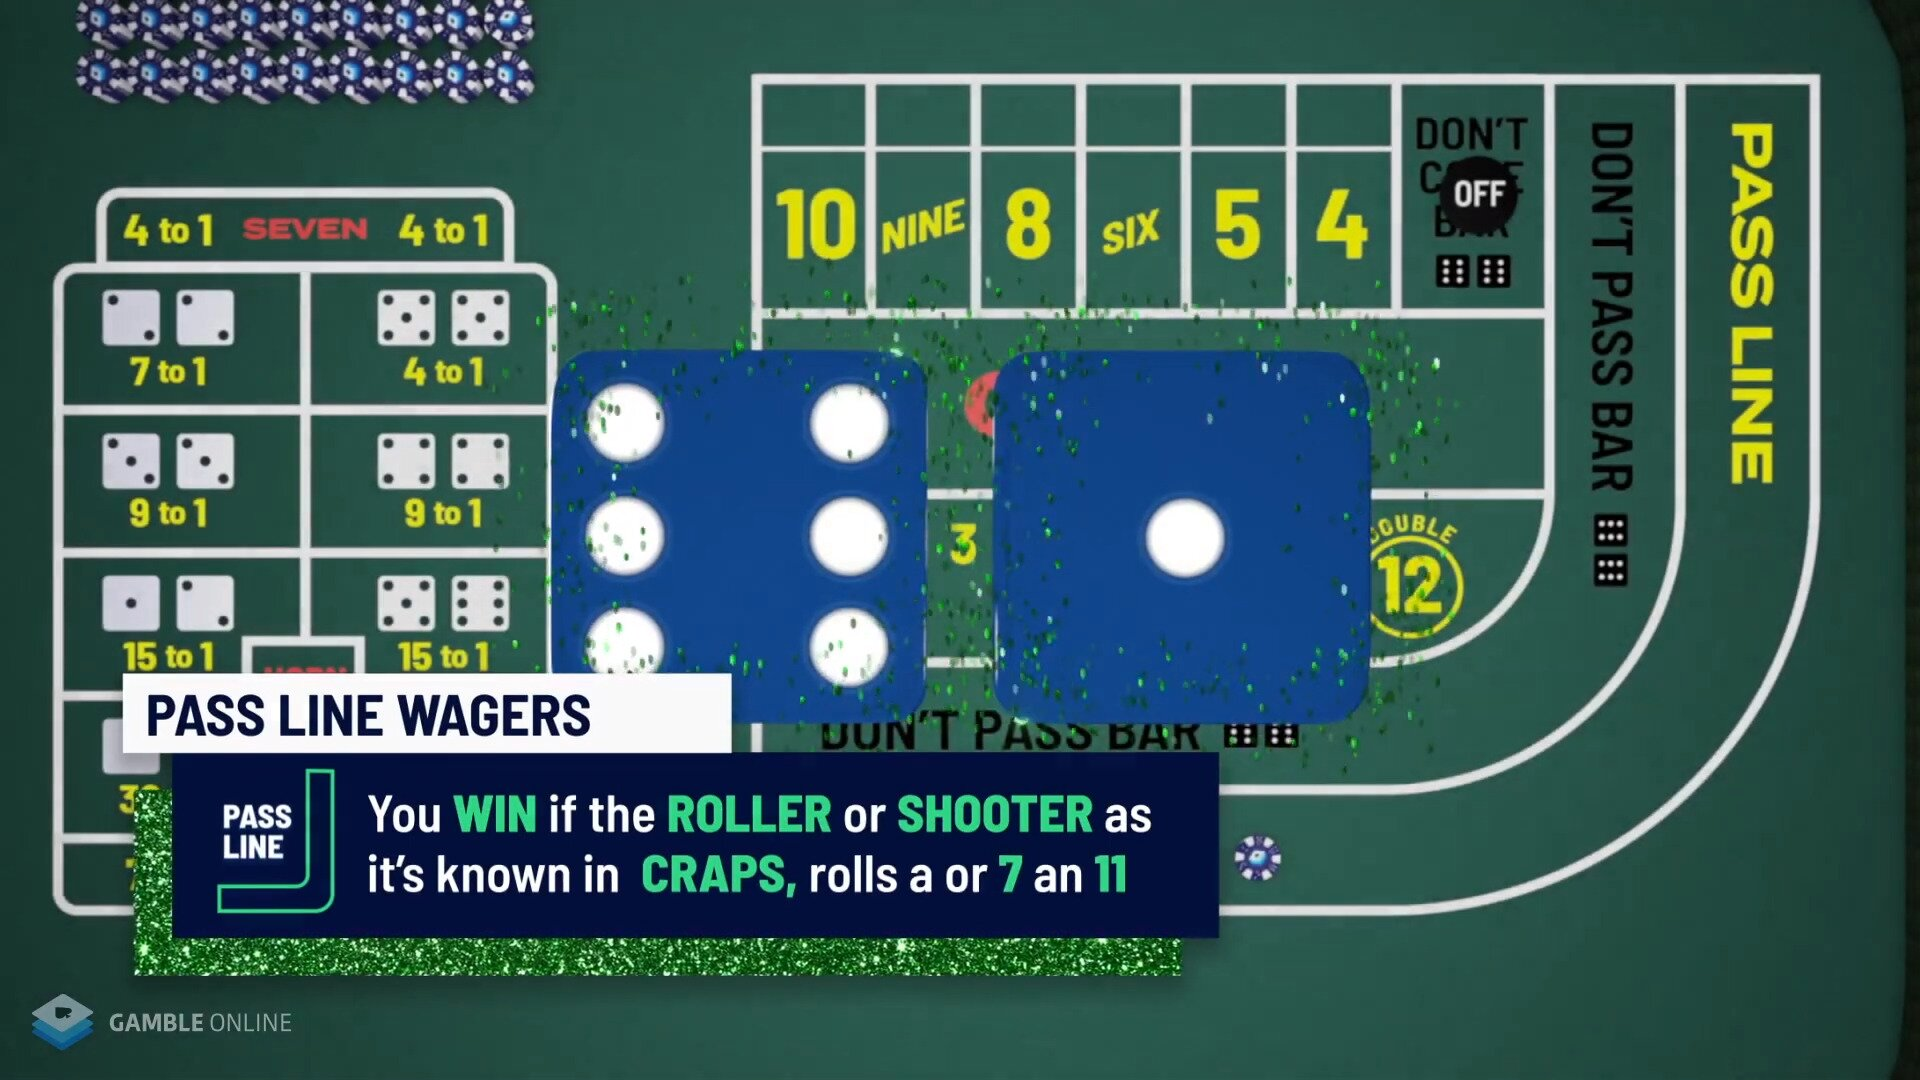 How to Play Craps Online _ Learn to Play Craps in Under 10 Minutes 2020 1-47 screenshot